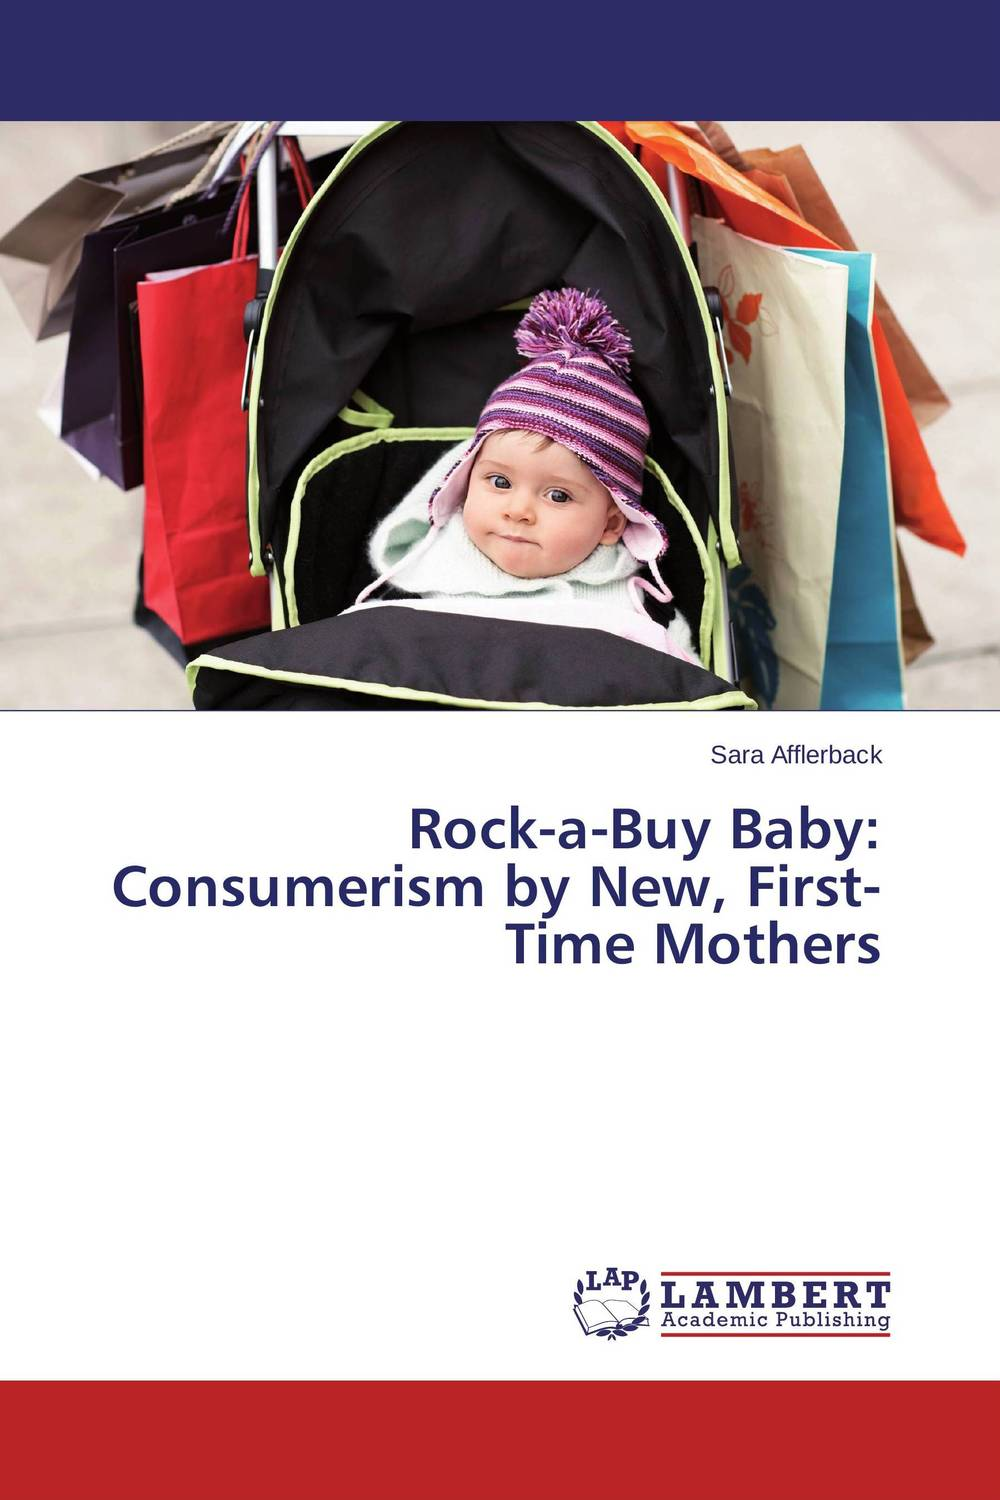 Rock-a-Buy Baby: Consumerism by New, First-Time Mothers through my own eyes – single mothers